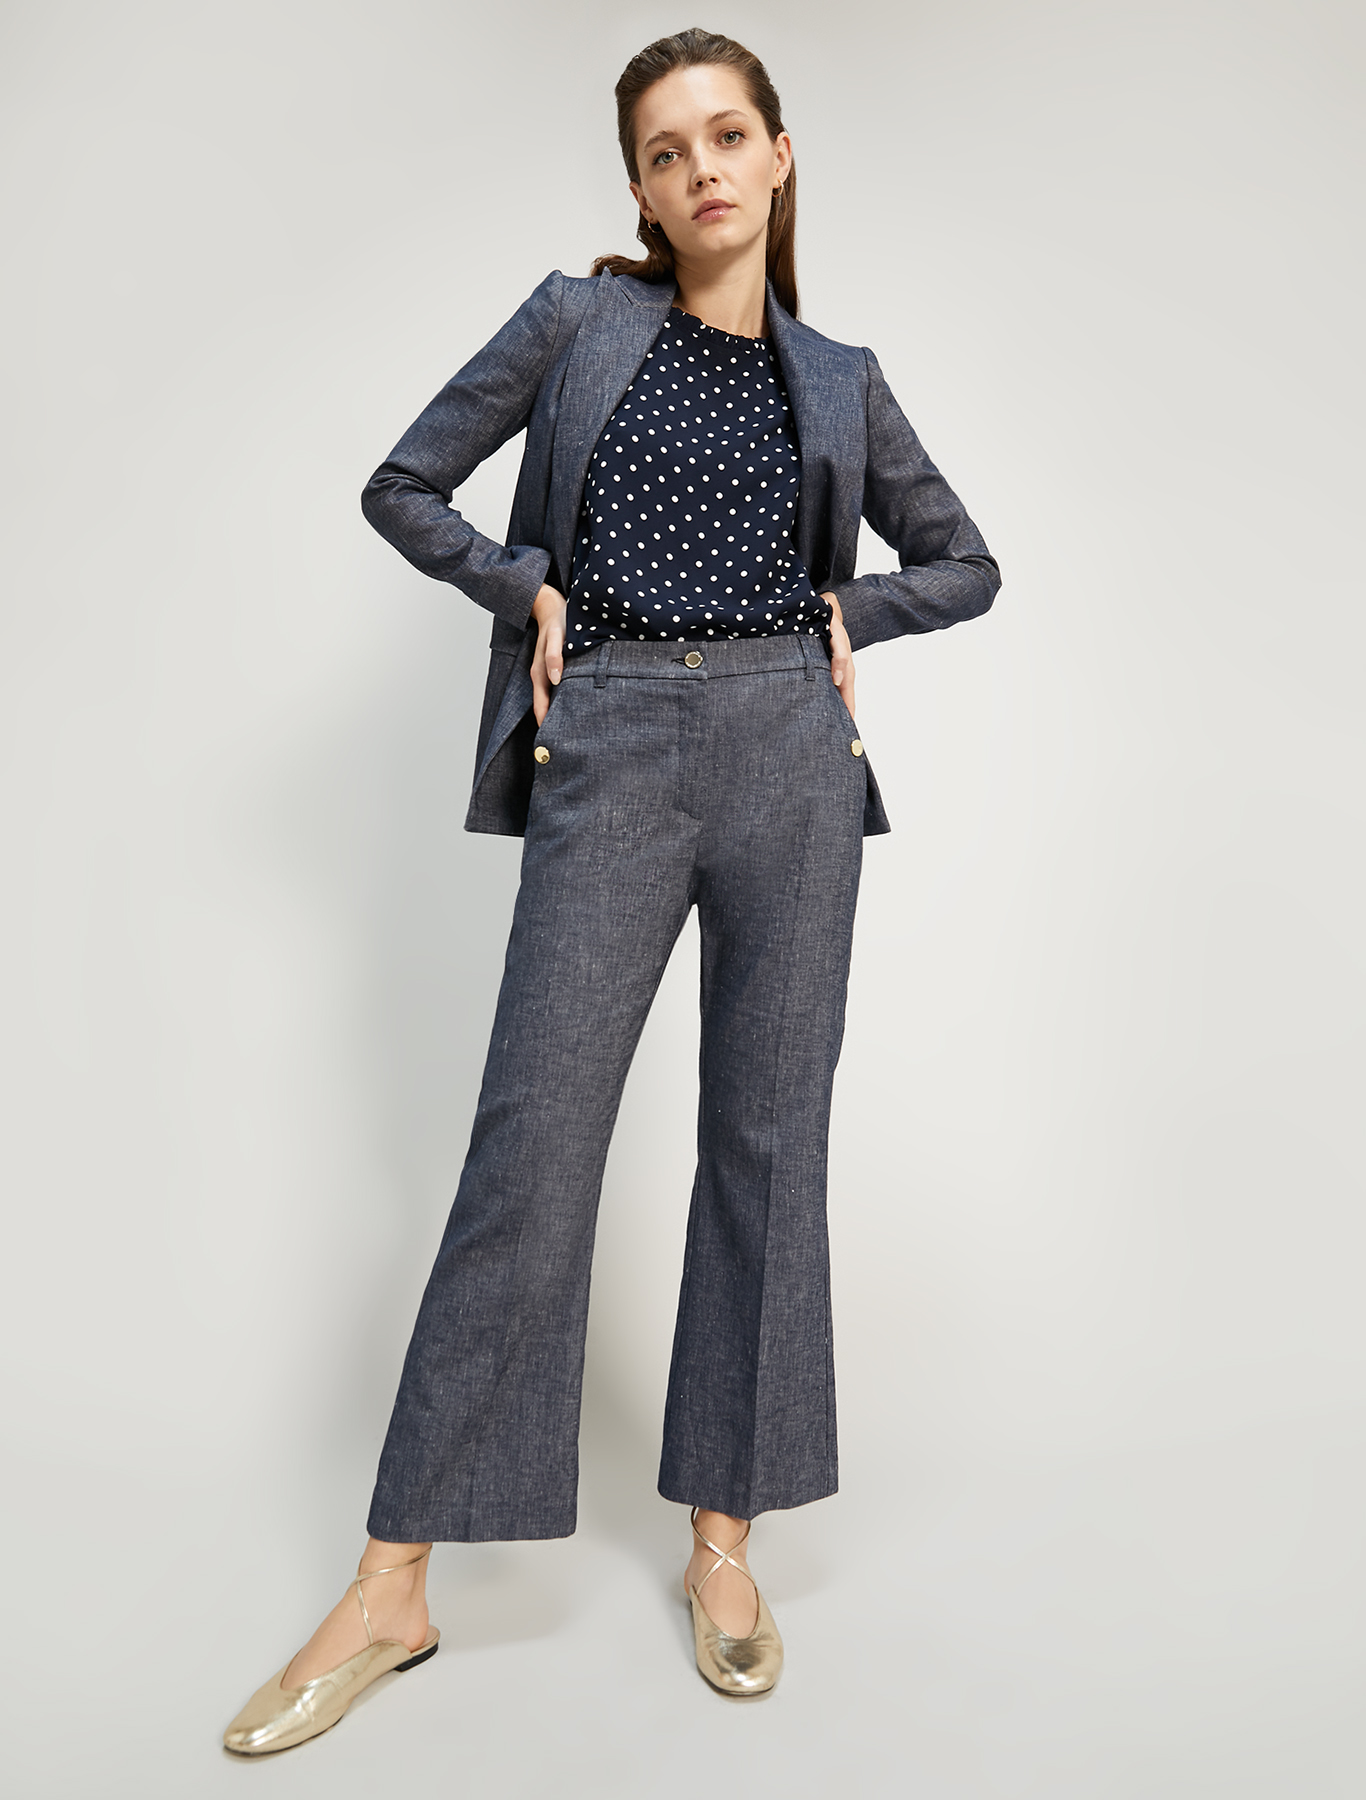 Polka dot sablé top - navy blue pattern - pennyblack